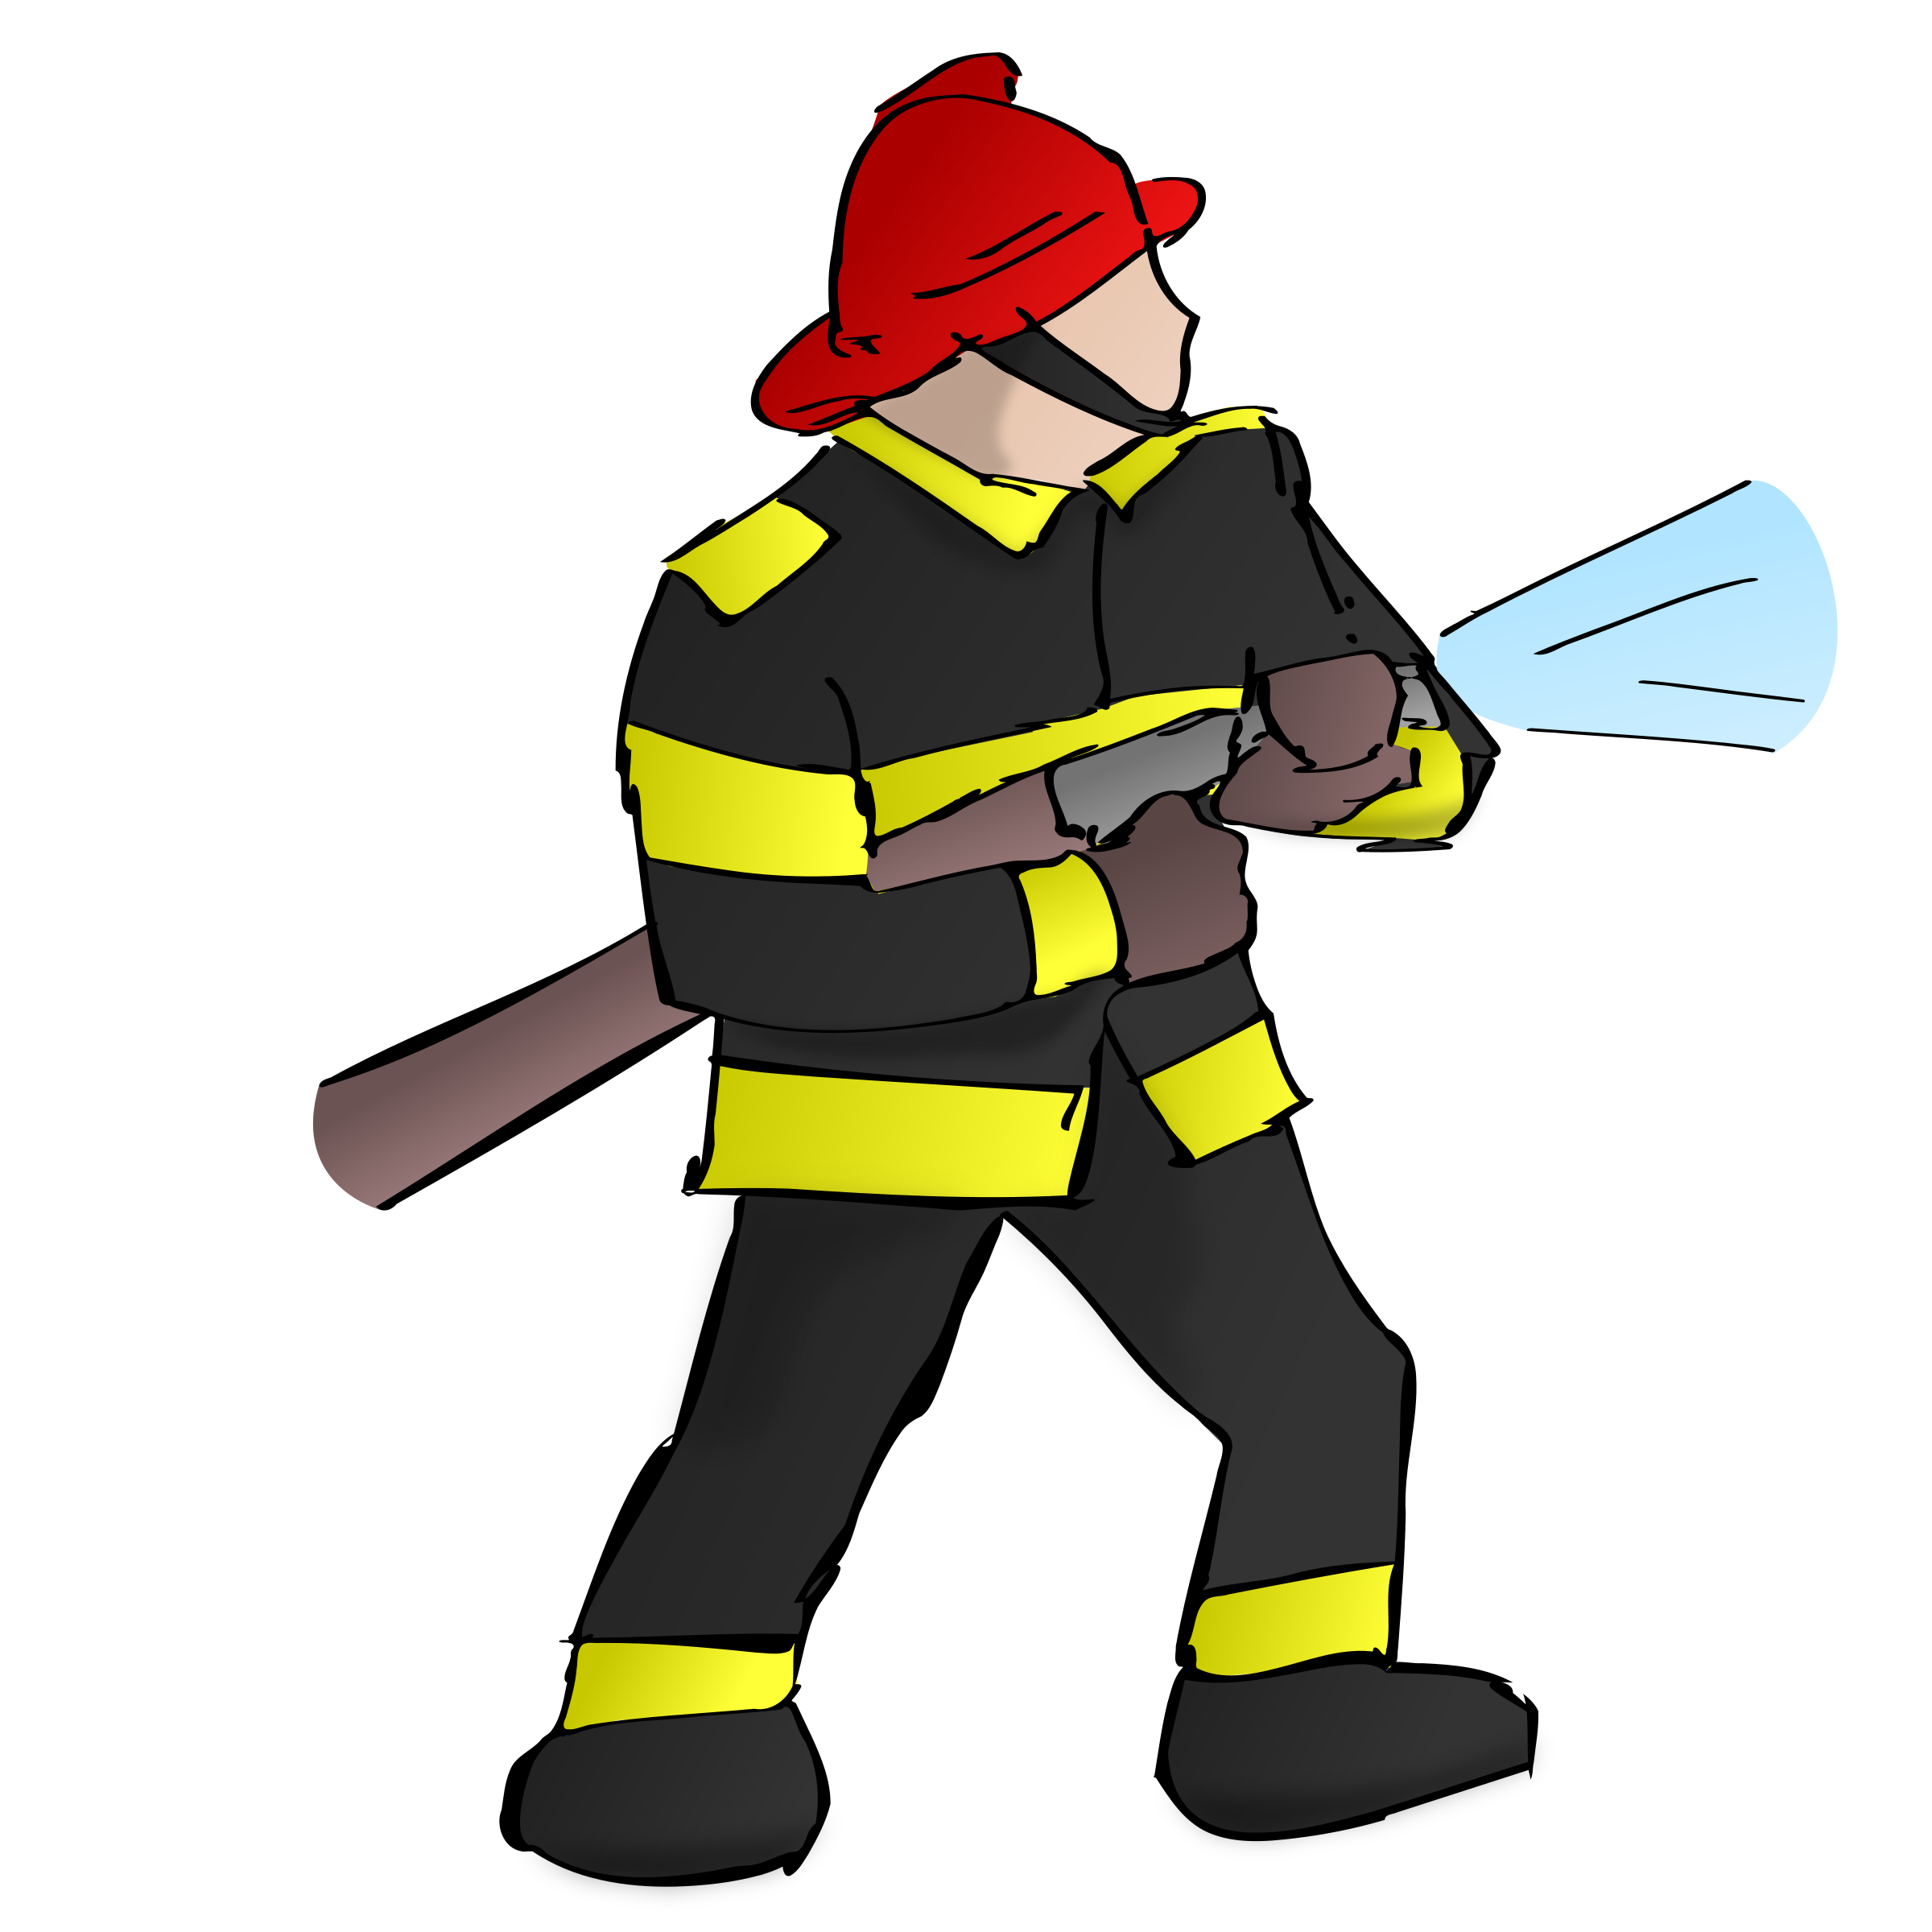 clipart fire fighter rh openclipart org firefighter badge clipart firefighter badge clipart